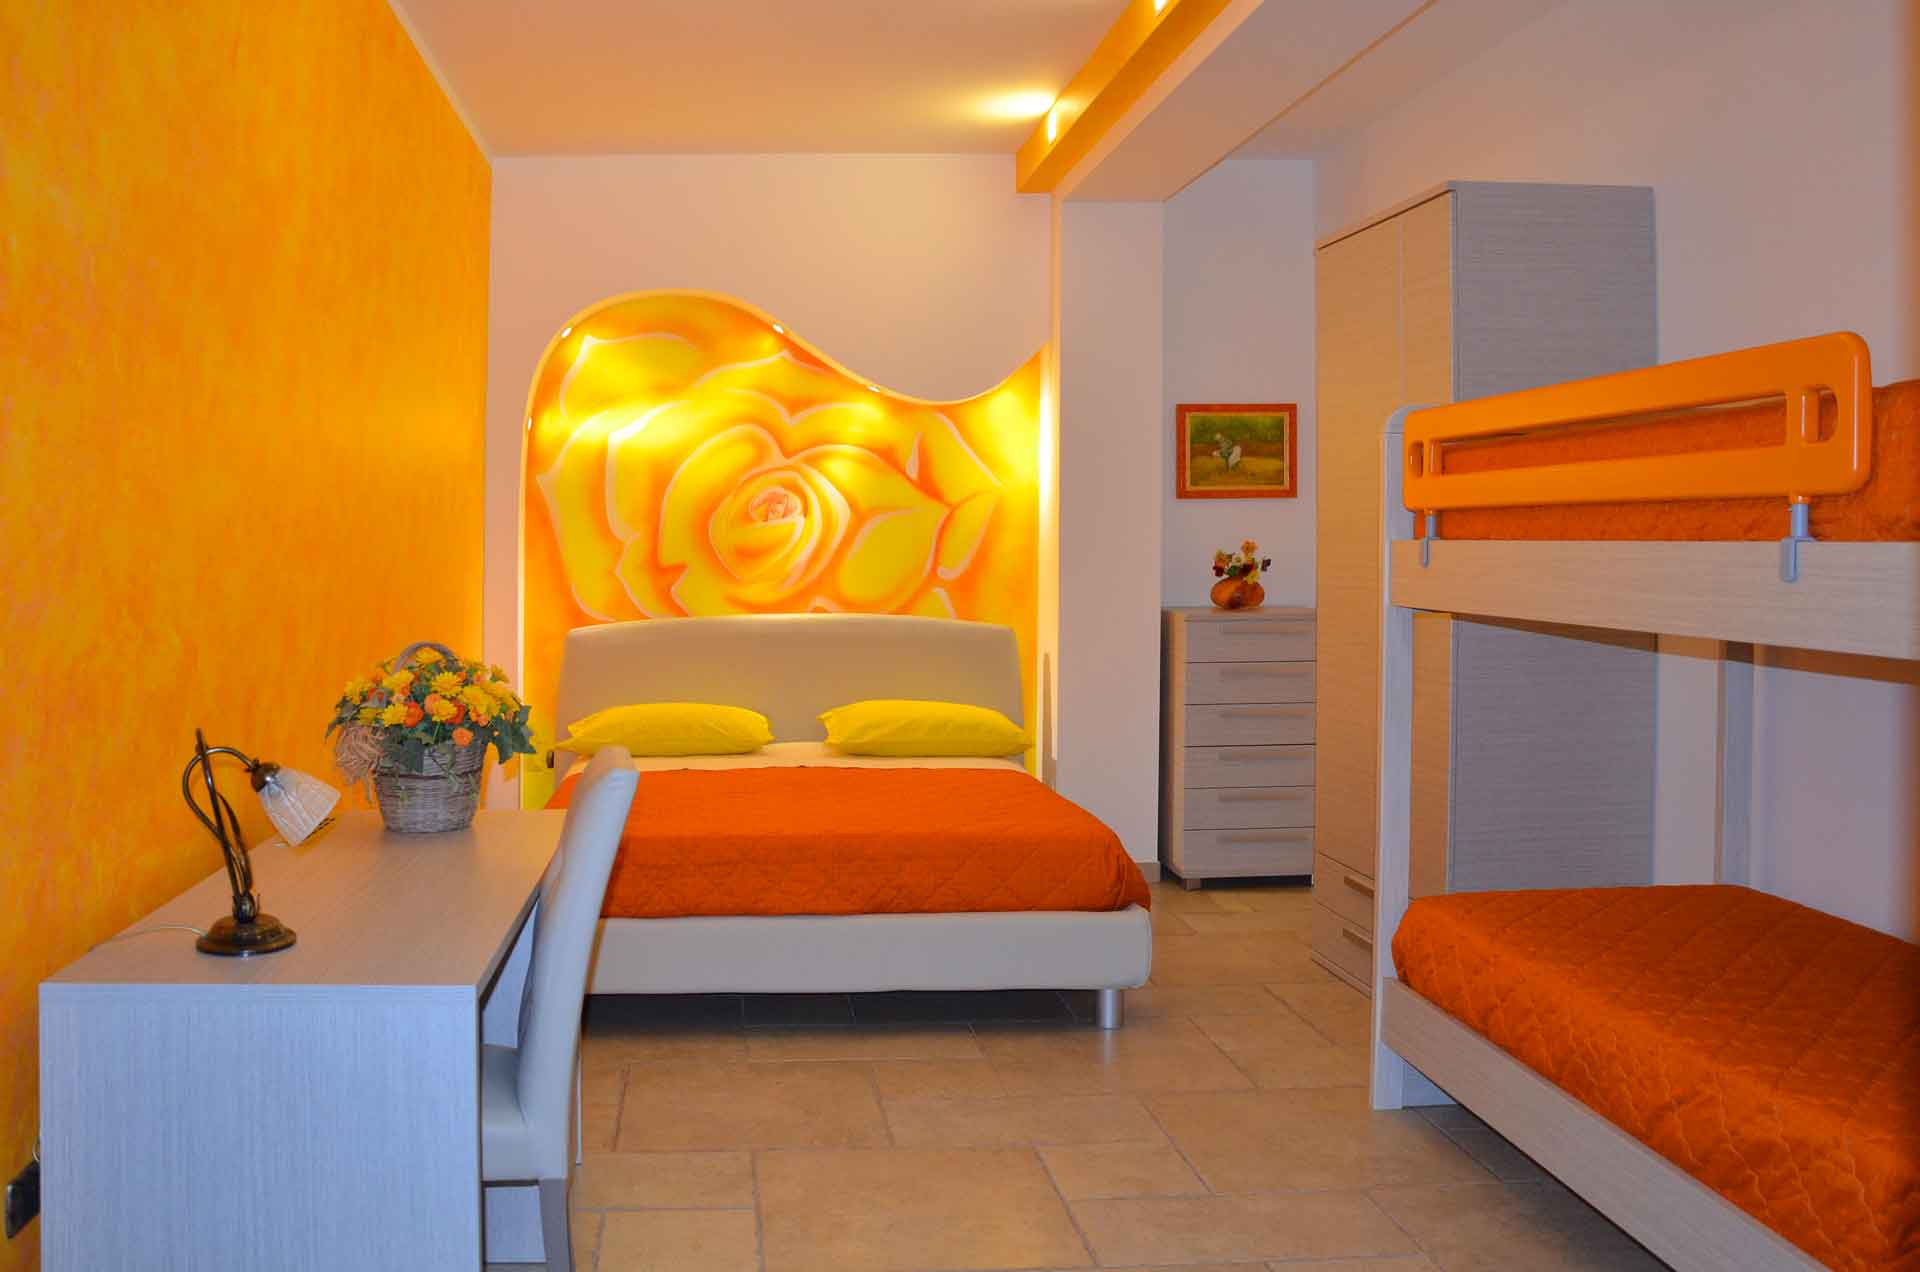 B&B Anemos - Finely furnished new-build rooms